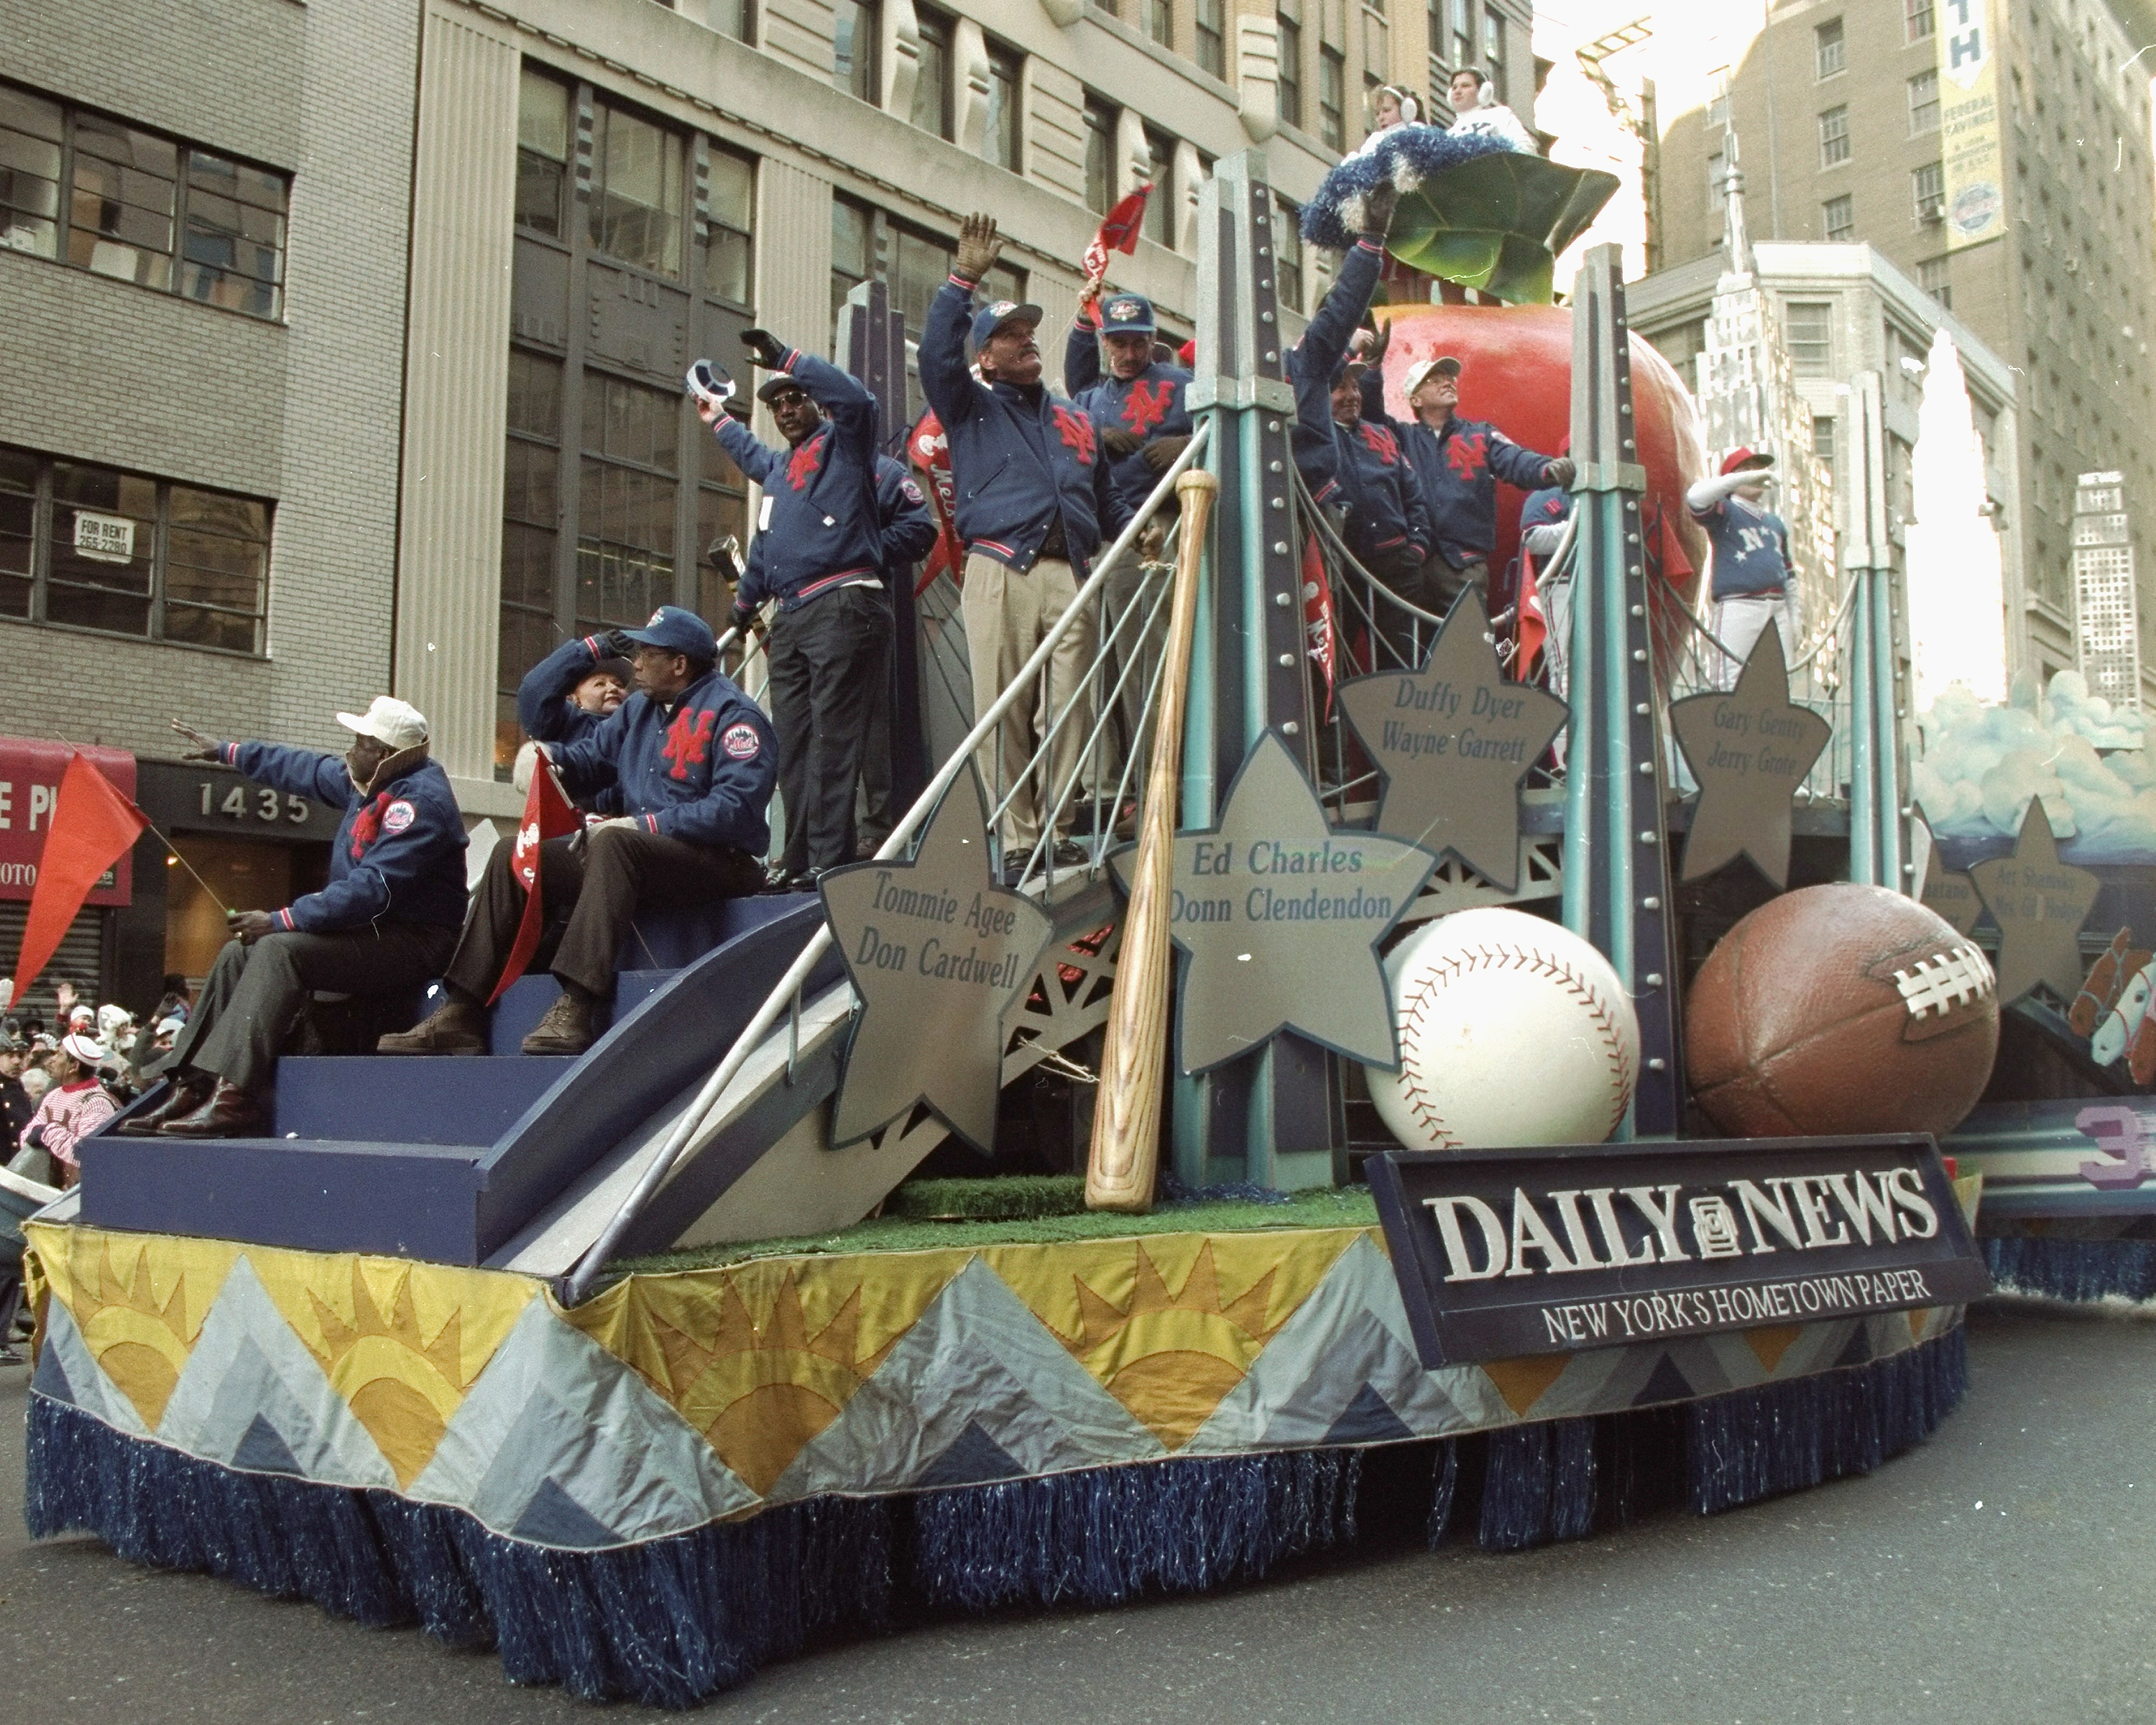 Daily News float carries 1969 New York Mets at Macy's Thanks